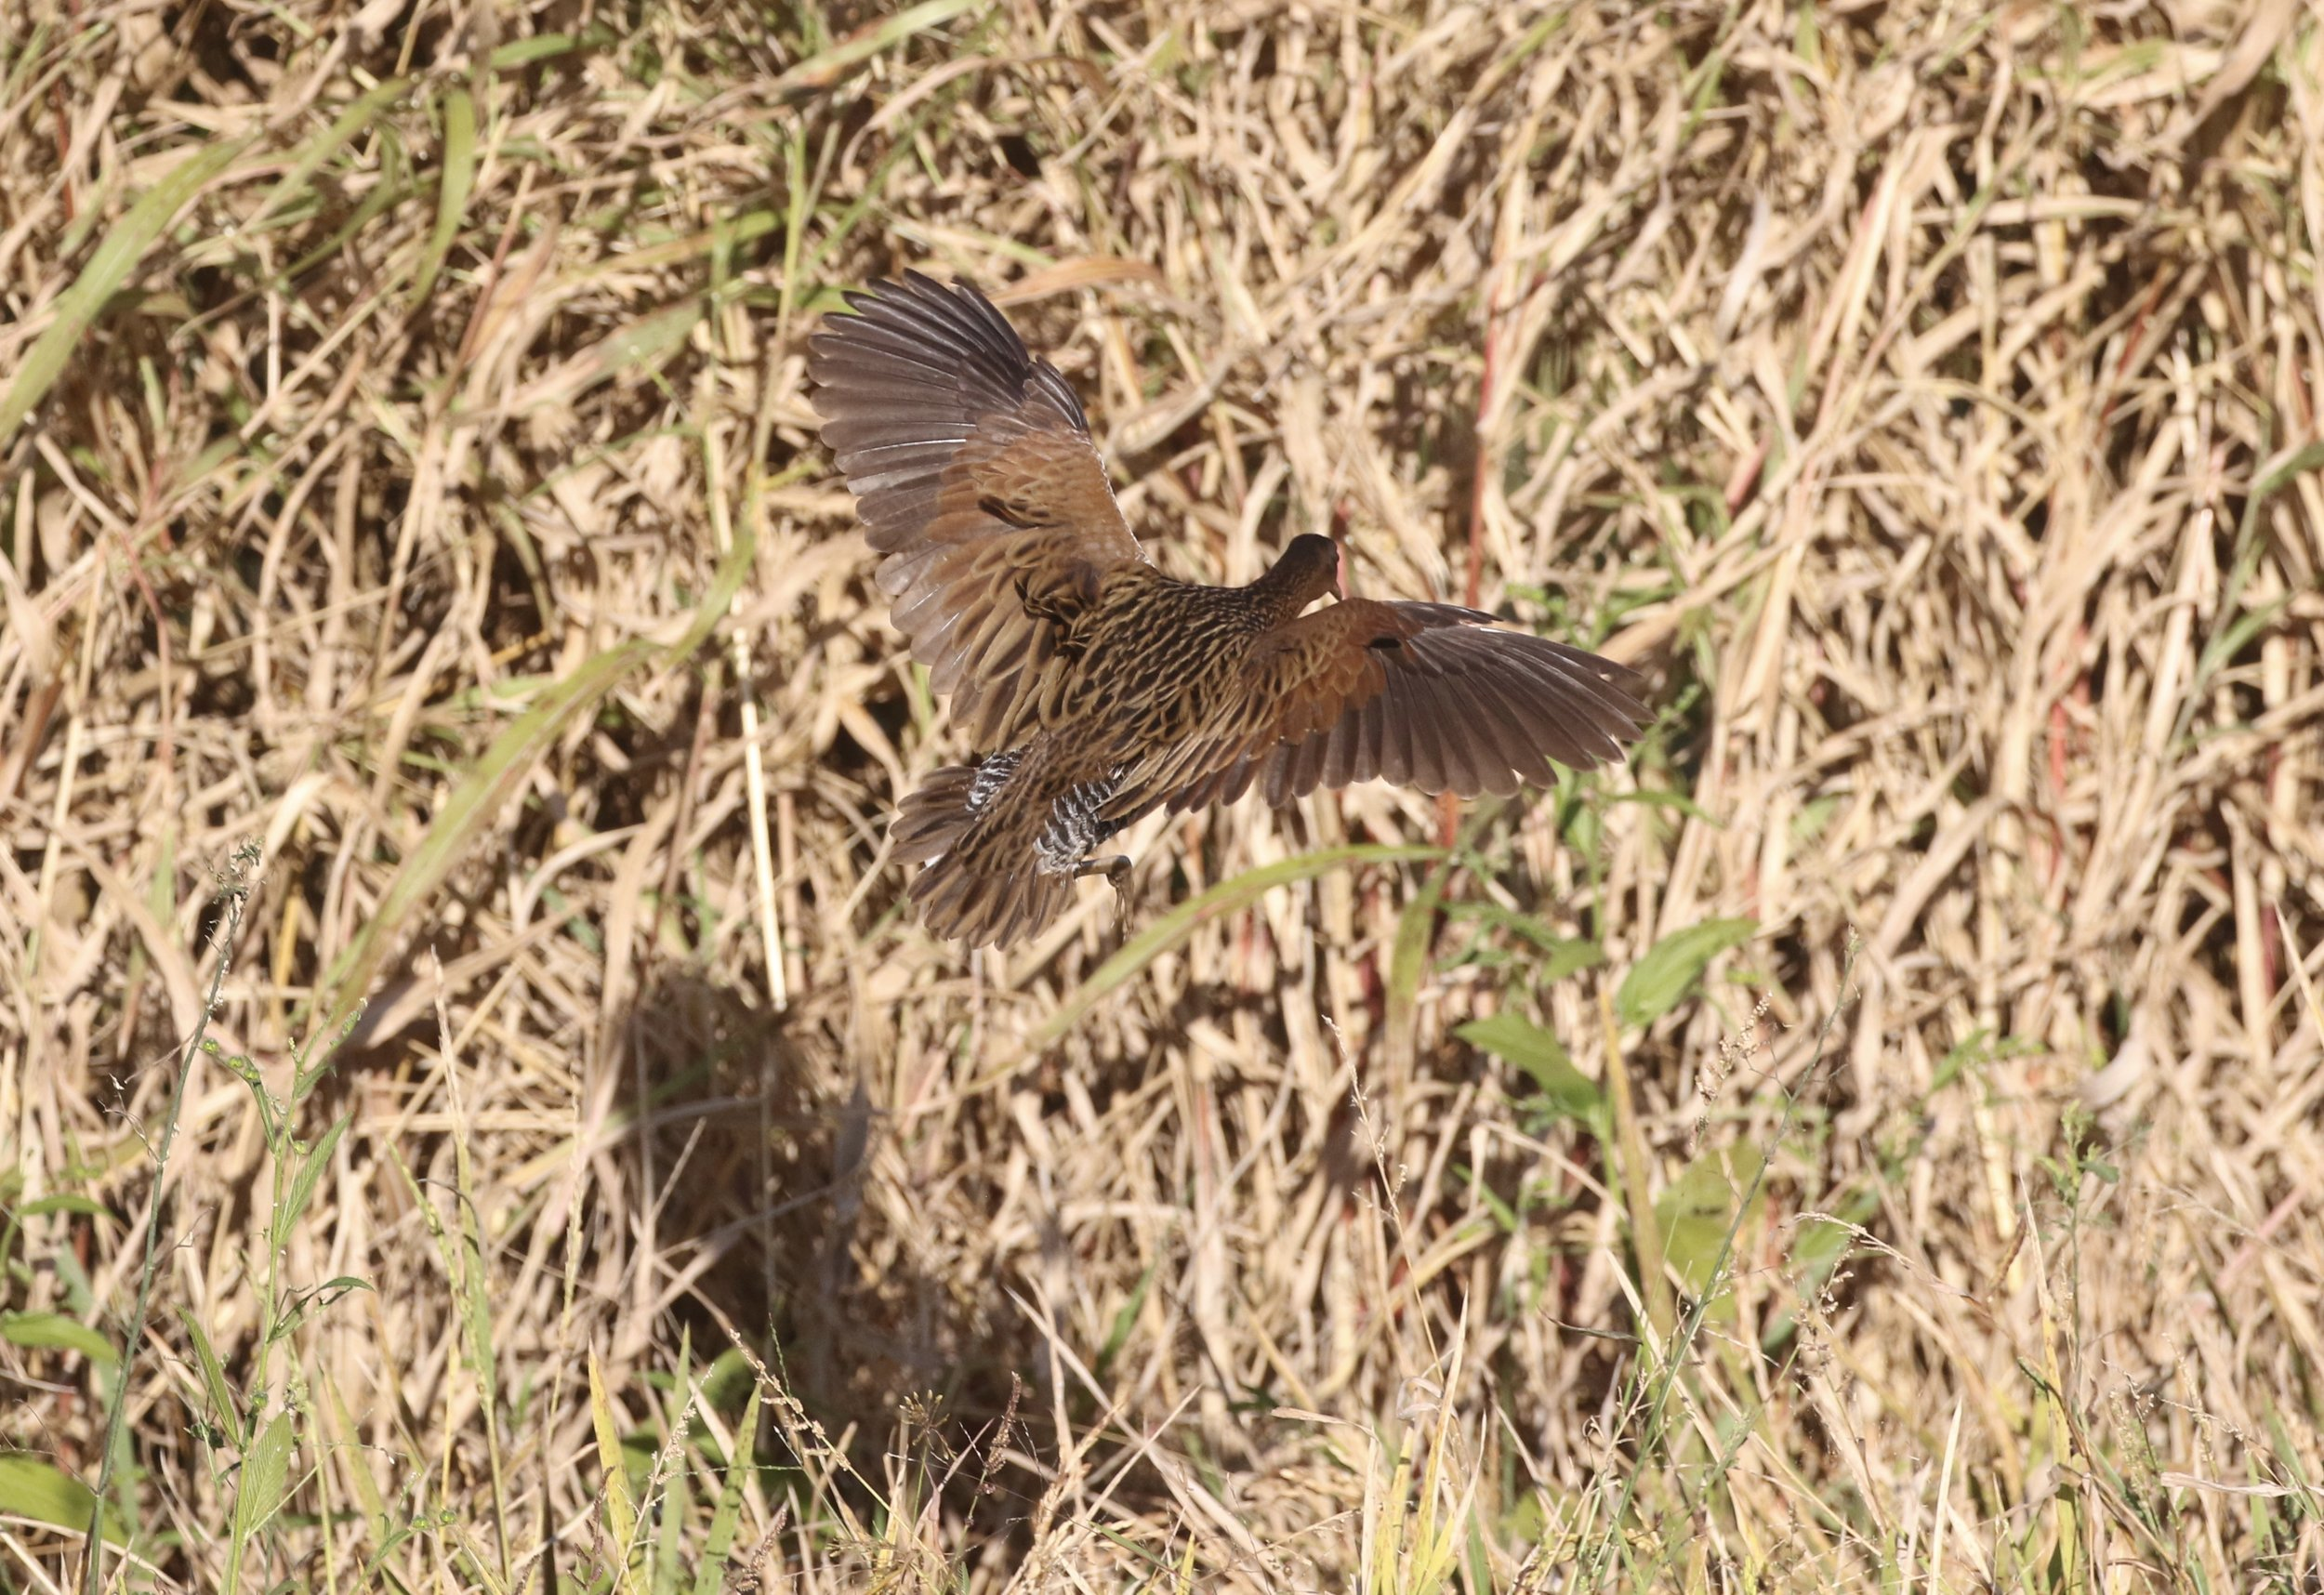 The largest rail species, the King Rail flushes away from the combine into the taller grass.